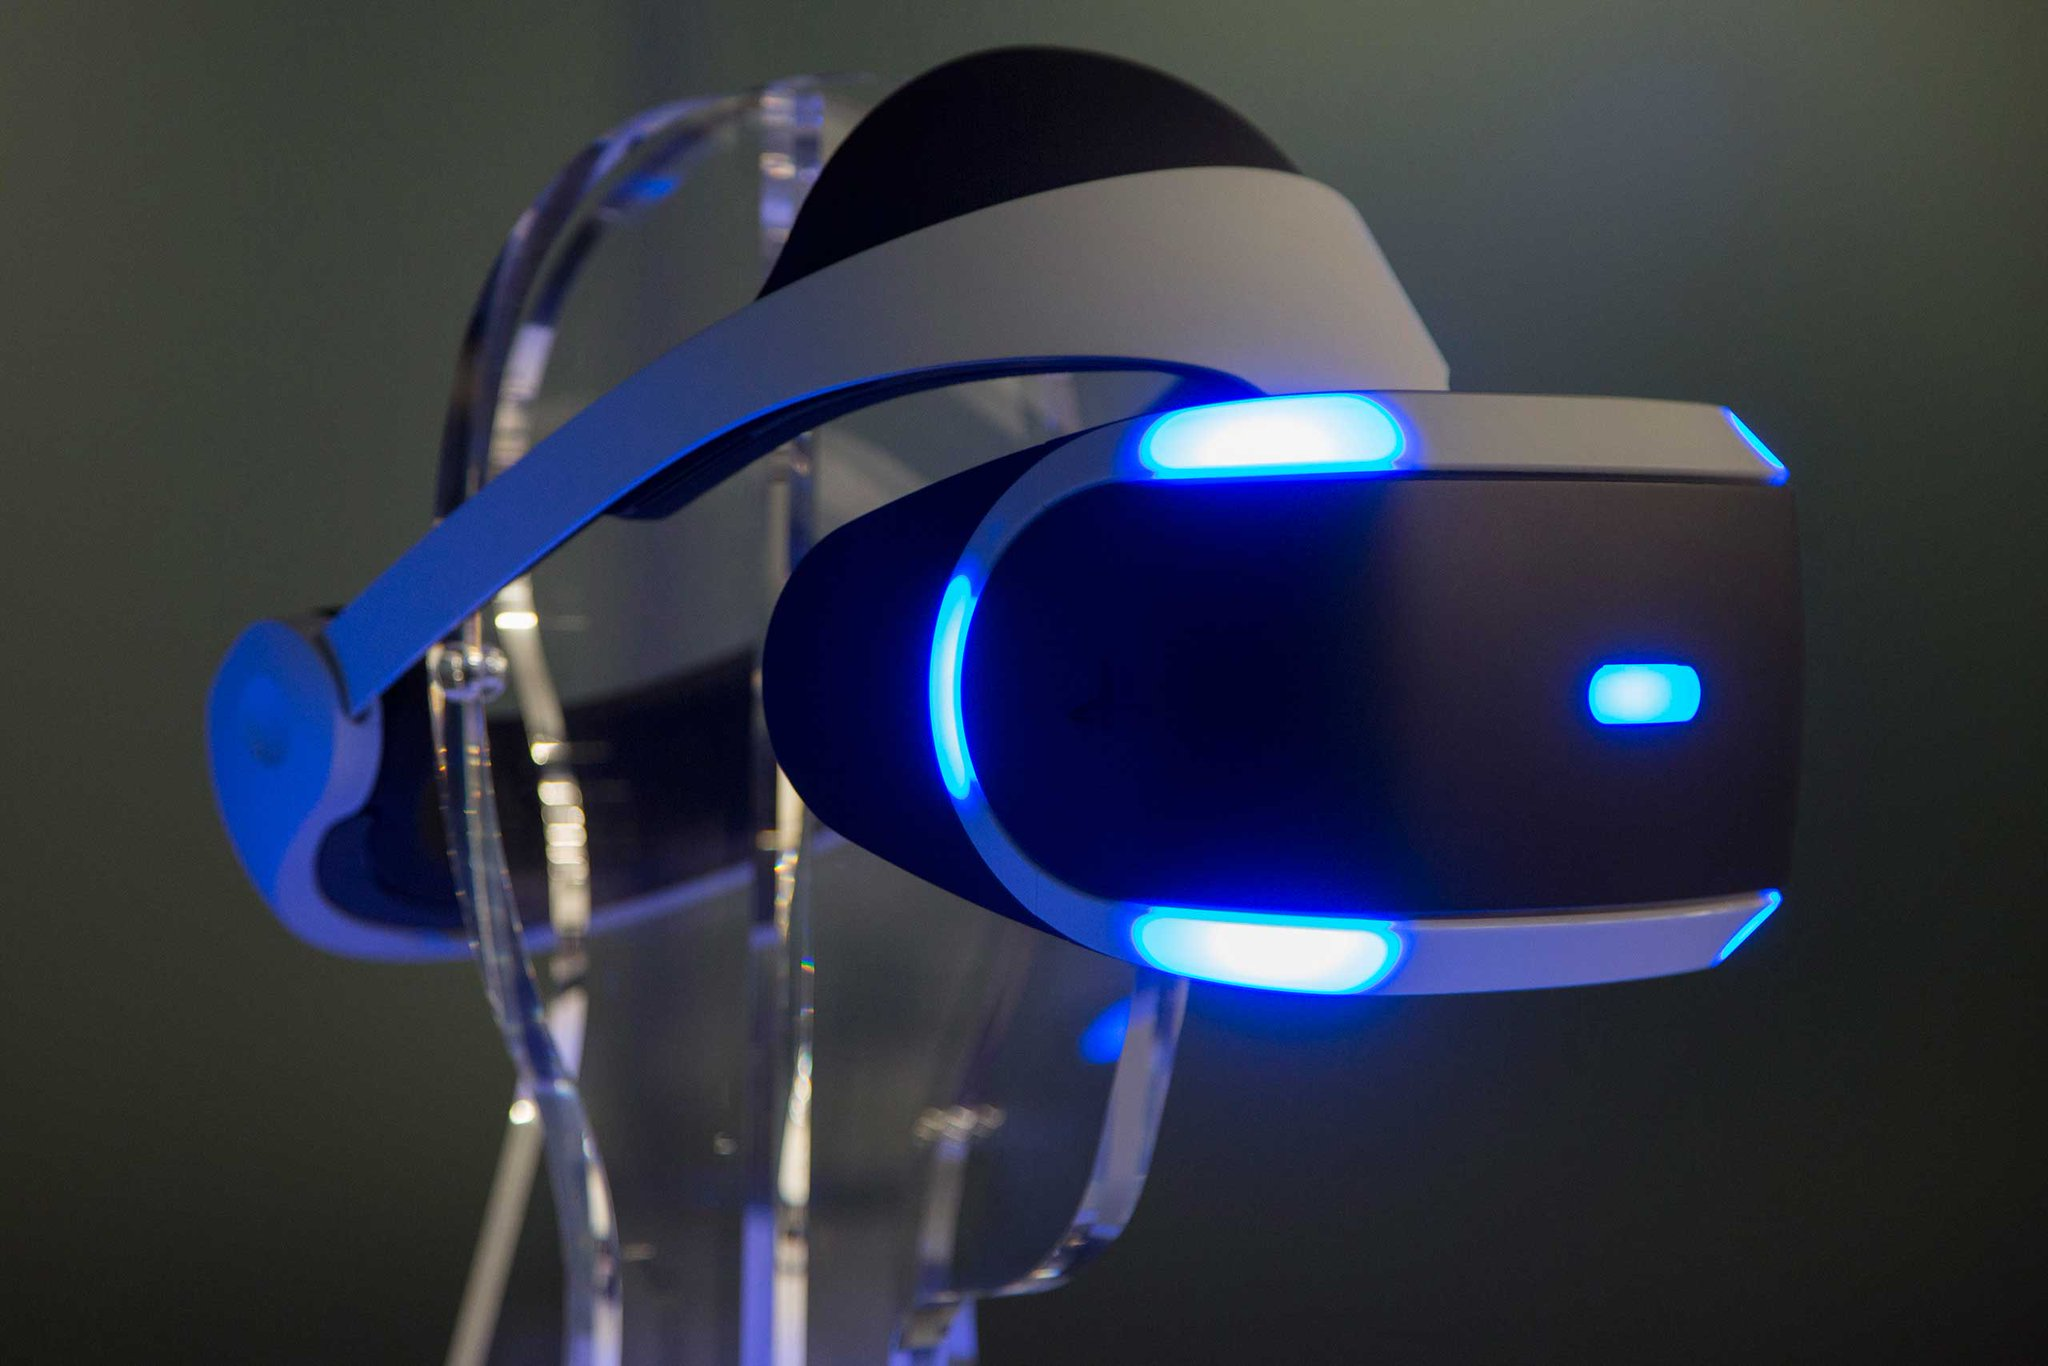 Regular proposals are so out and virtual reality proposals are in http://t.co/nvbQwn9mZH http://t.co/dE8Sop6U8Q